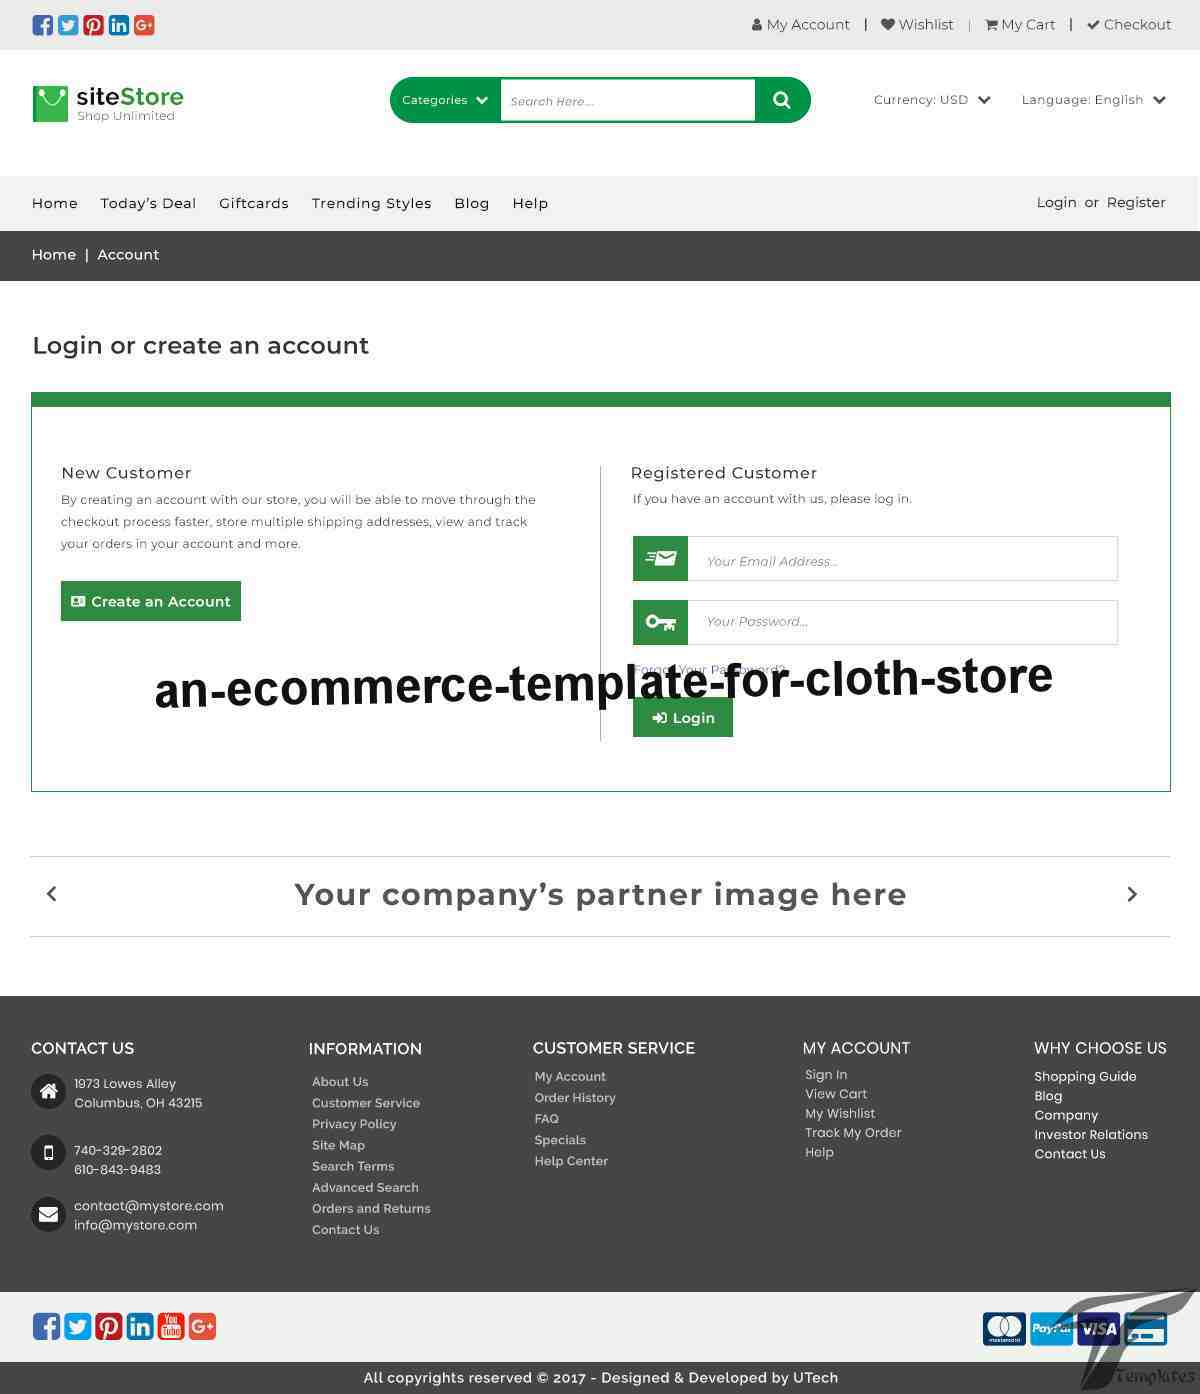 https://images.besthemes.com/images/h1_an-ecommerce-template-for-cloth-store18-_-244967348/preview/18_account-1.jpg